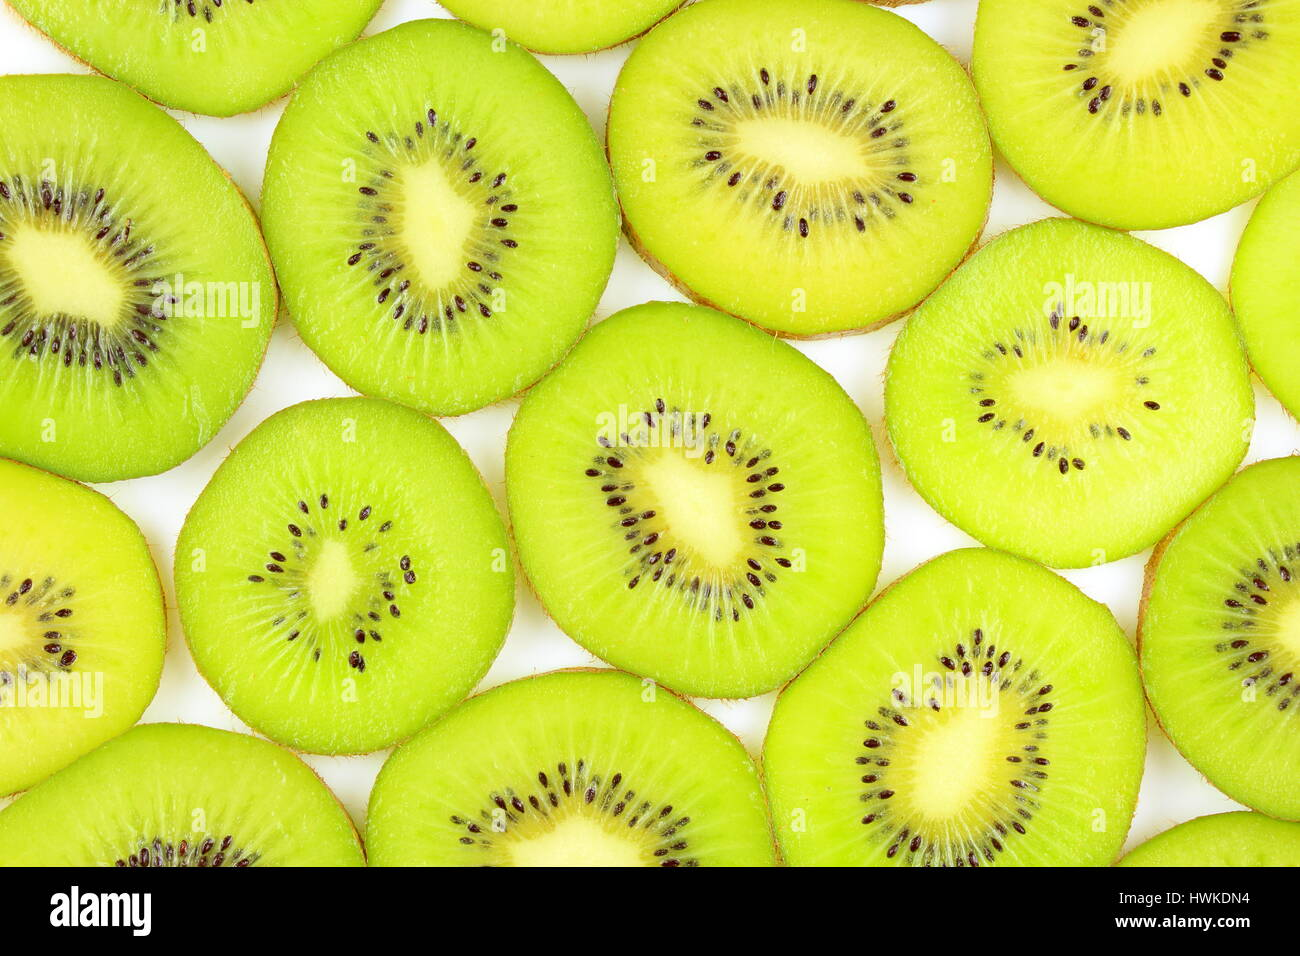 slices of fresh green kiwi fruits as a food background texture Stock Photo